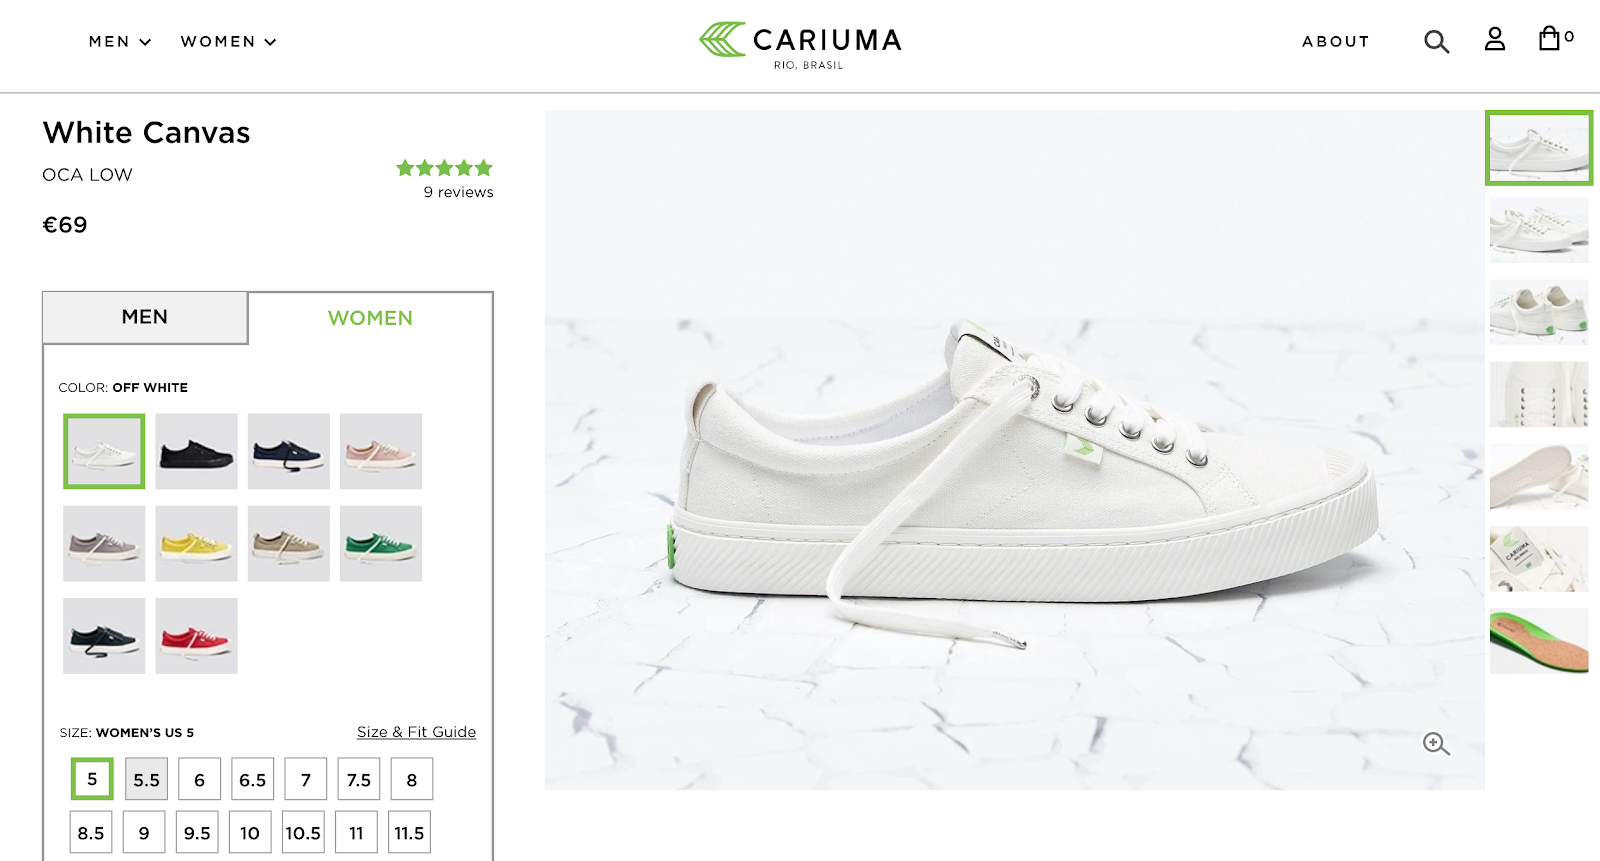 best product detail page examples cariuma